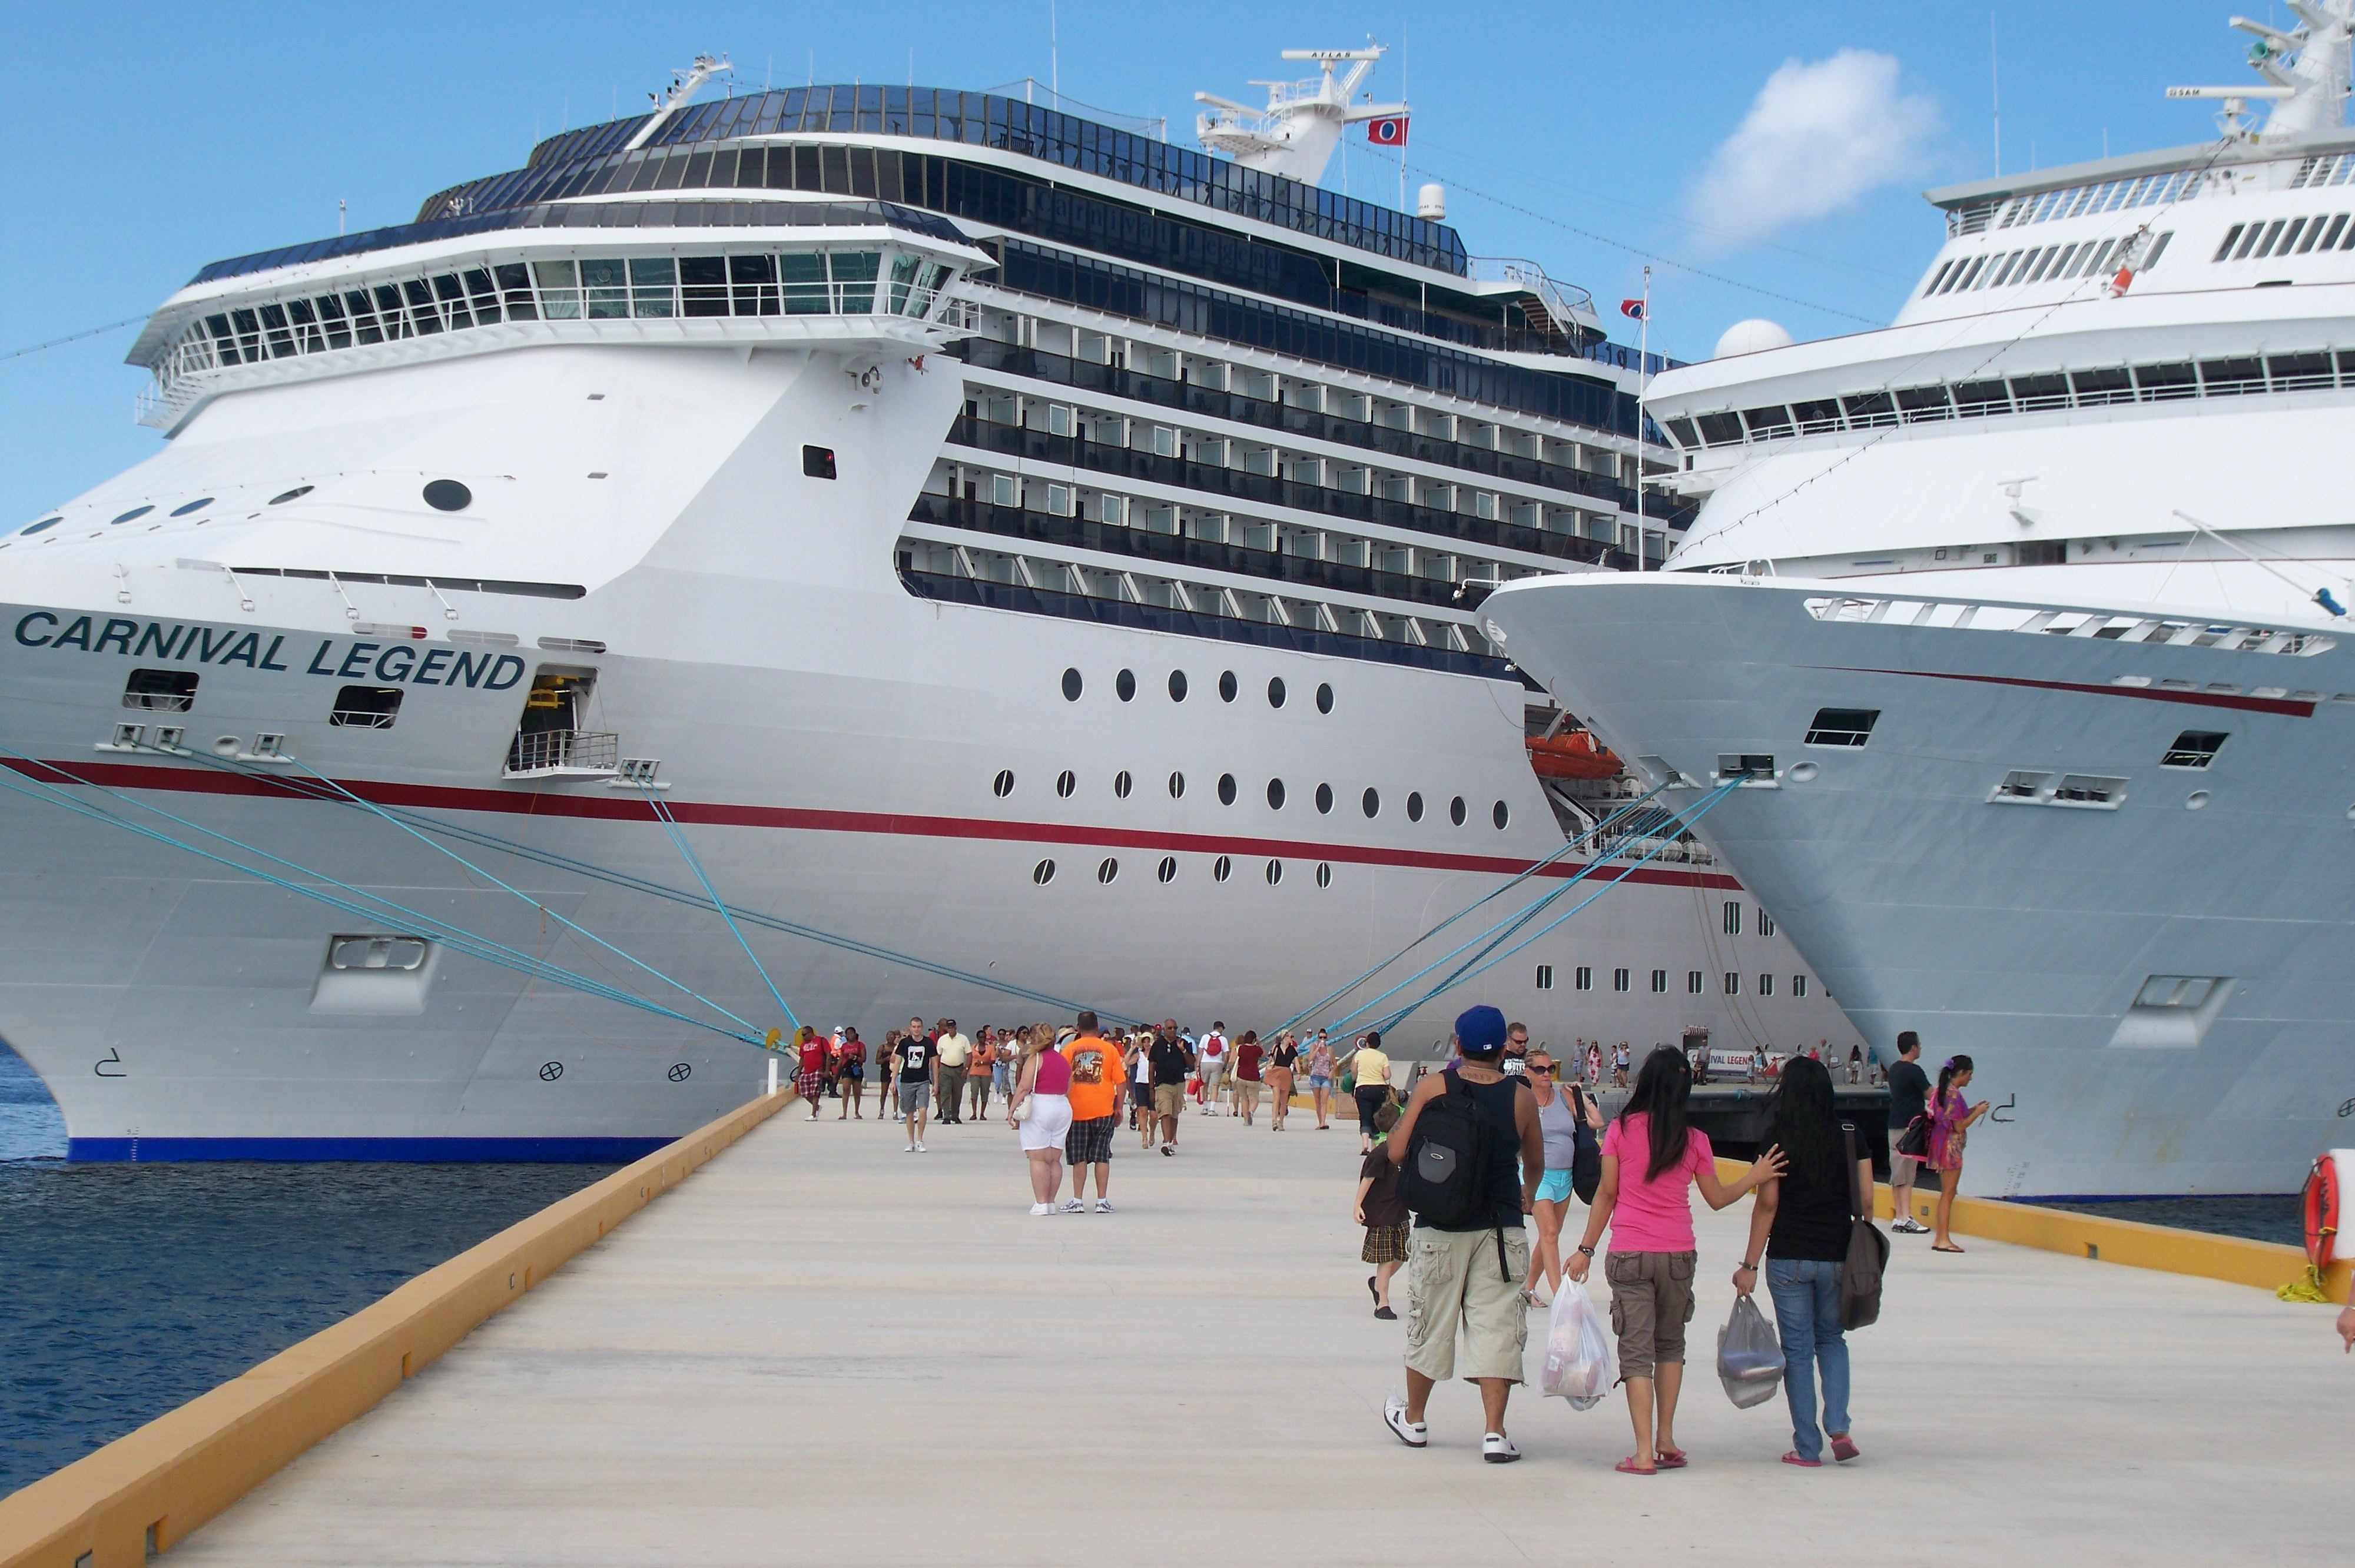 Carnival Cruise Cozumel Mexico  Been There Done That  Pinterest